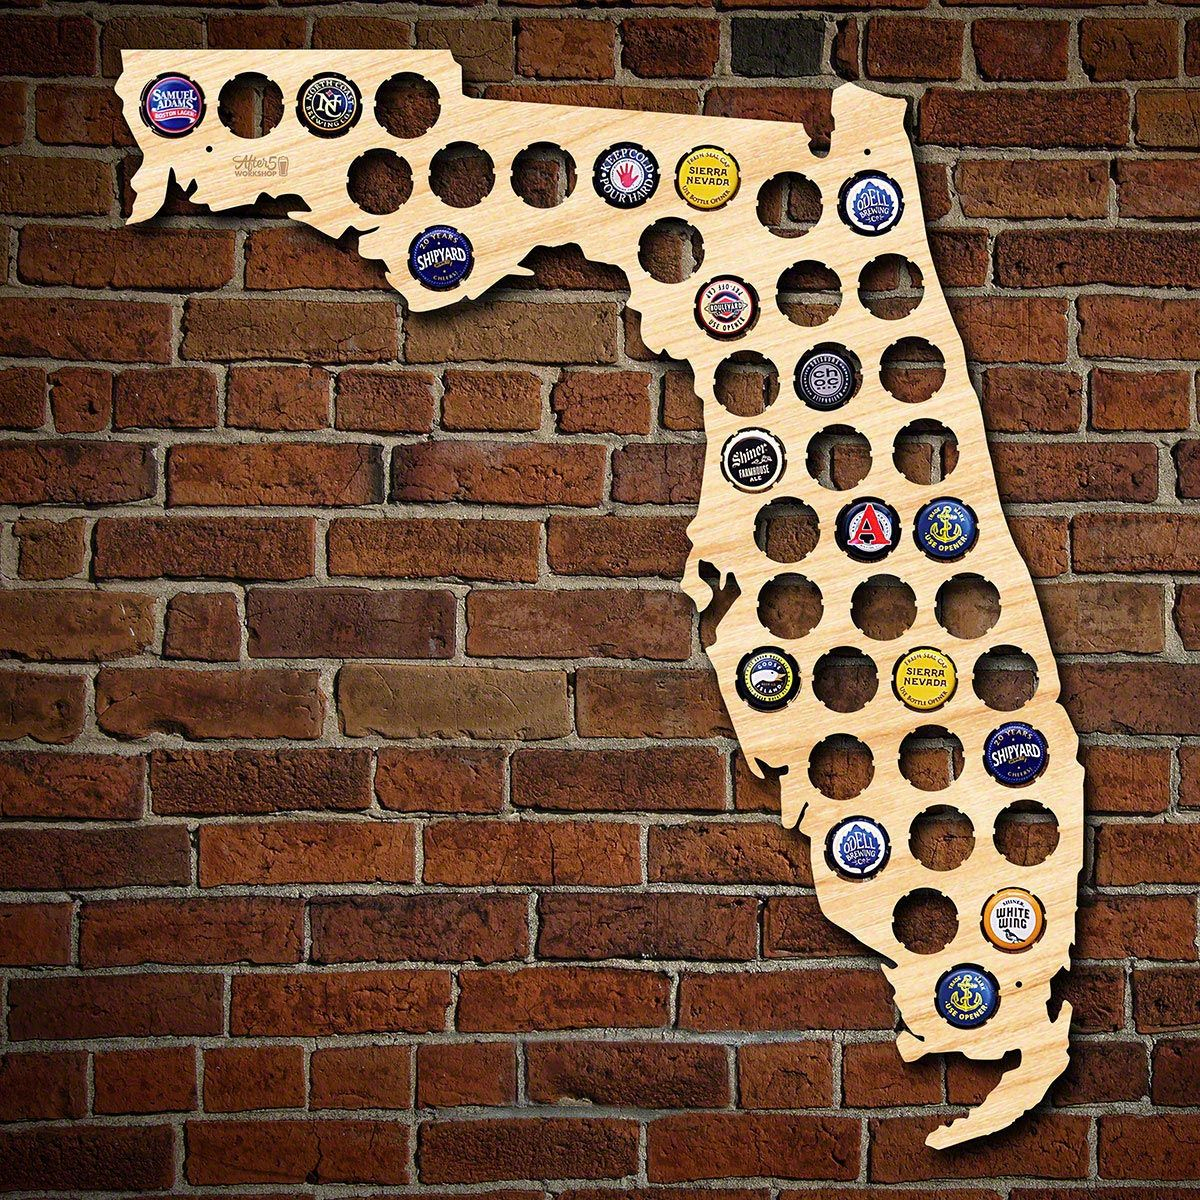 Florida Beer Cap Map - Florida Beer Cap Map